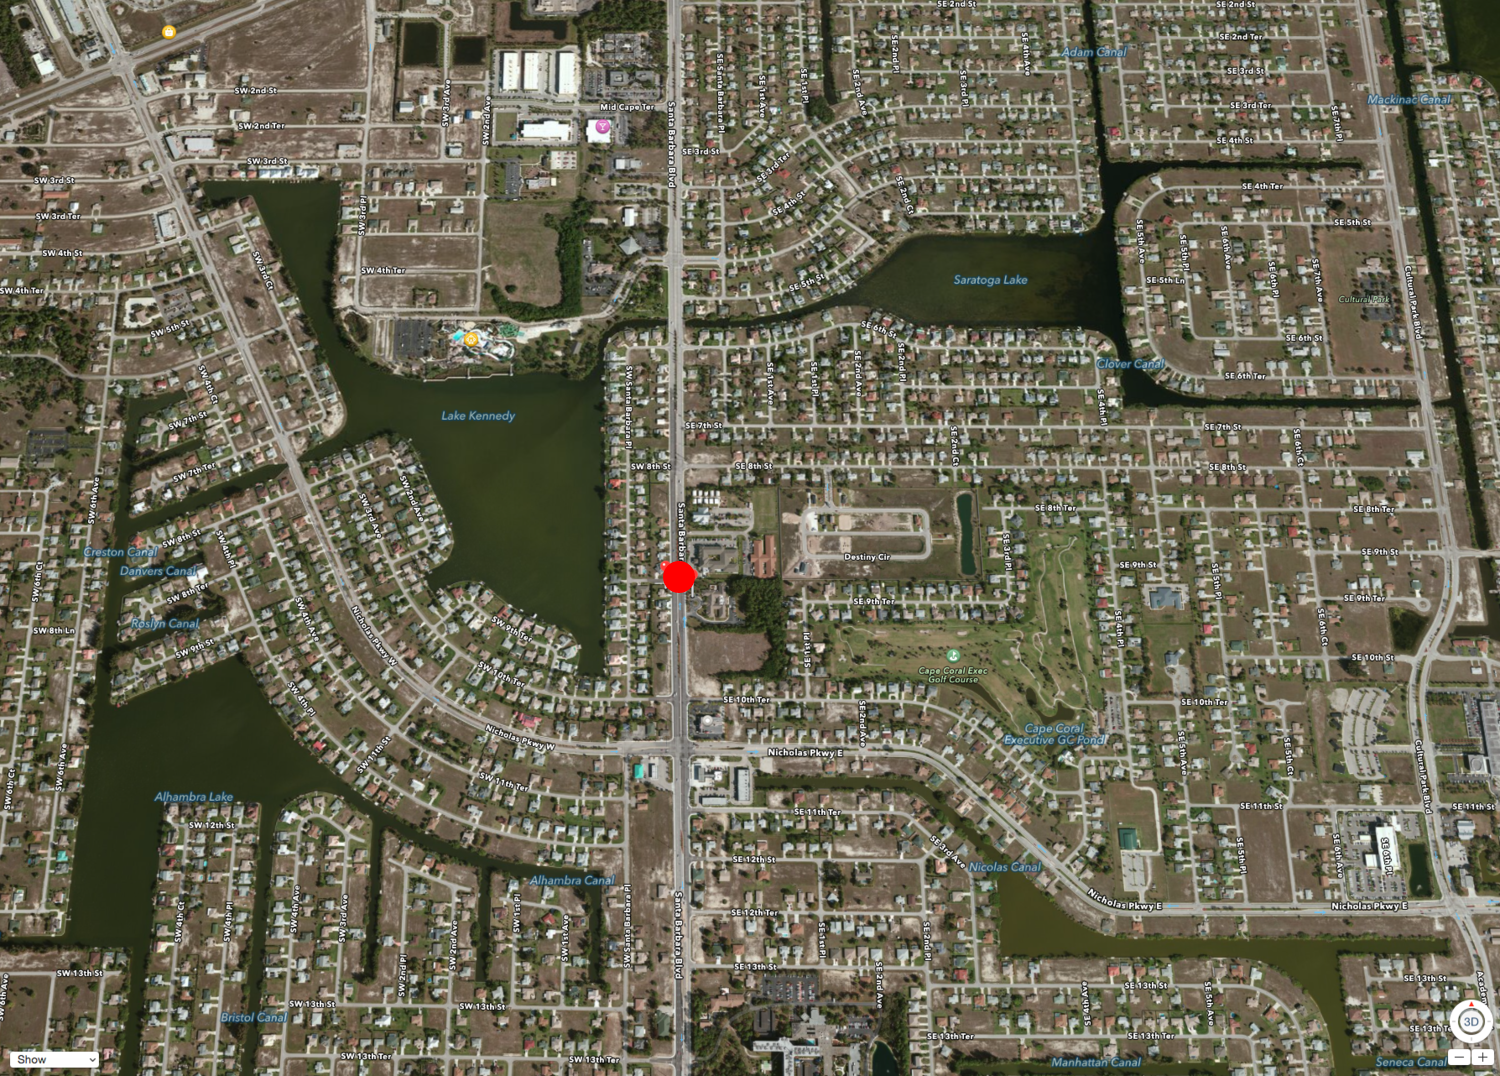 PHOTO: Approximate location of the crash shown on an aerial map. (Photo Courtesy of  Apple , Inc.)